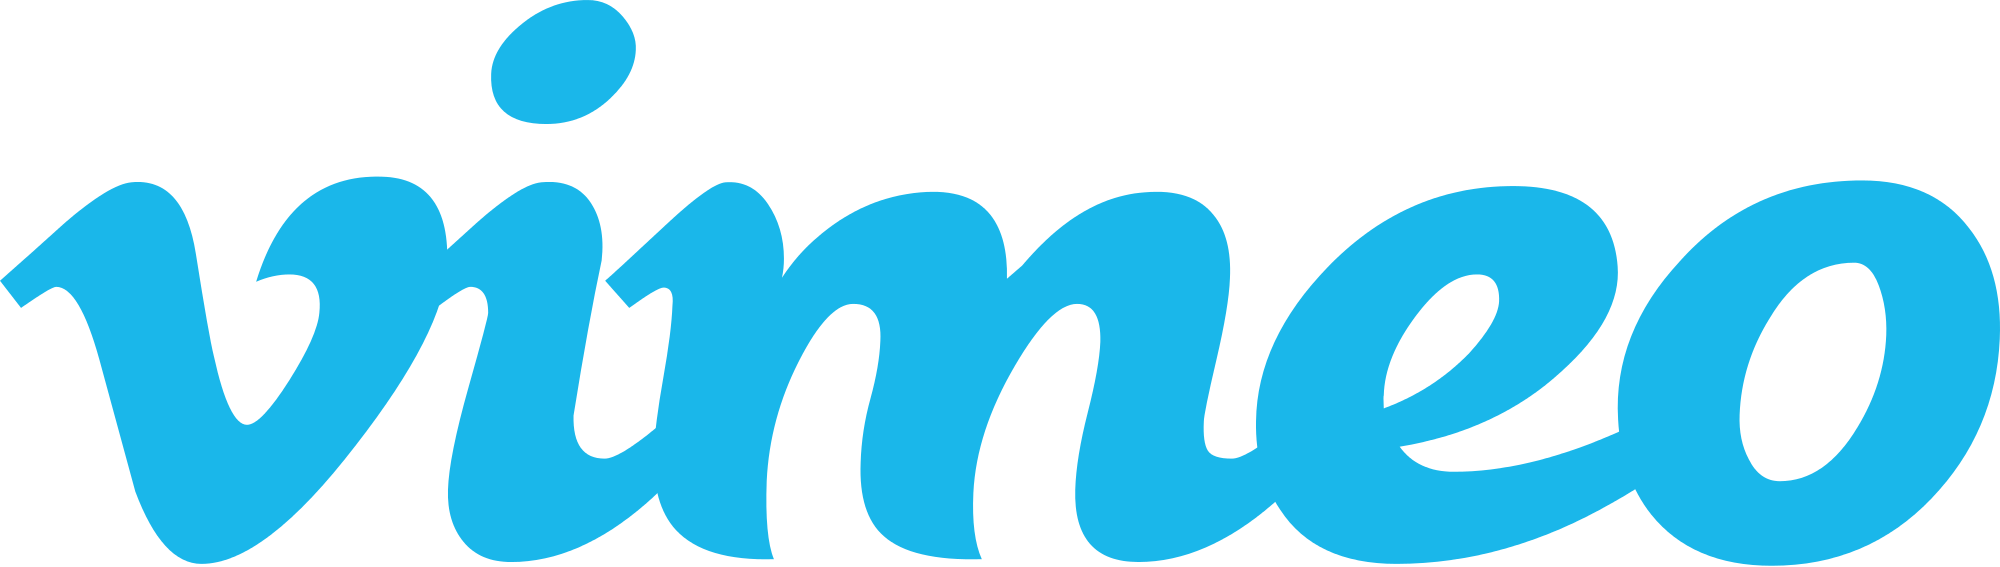 Vimeo uses PubNub to power in-app mobile push notifications